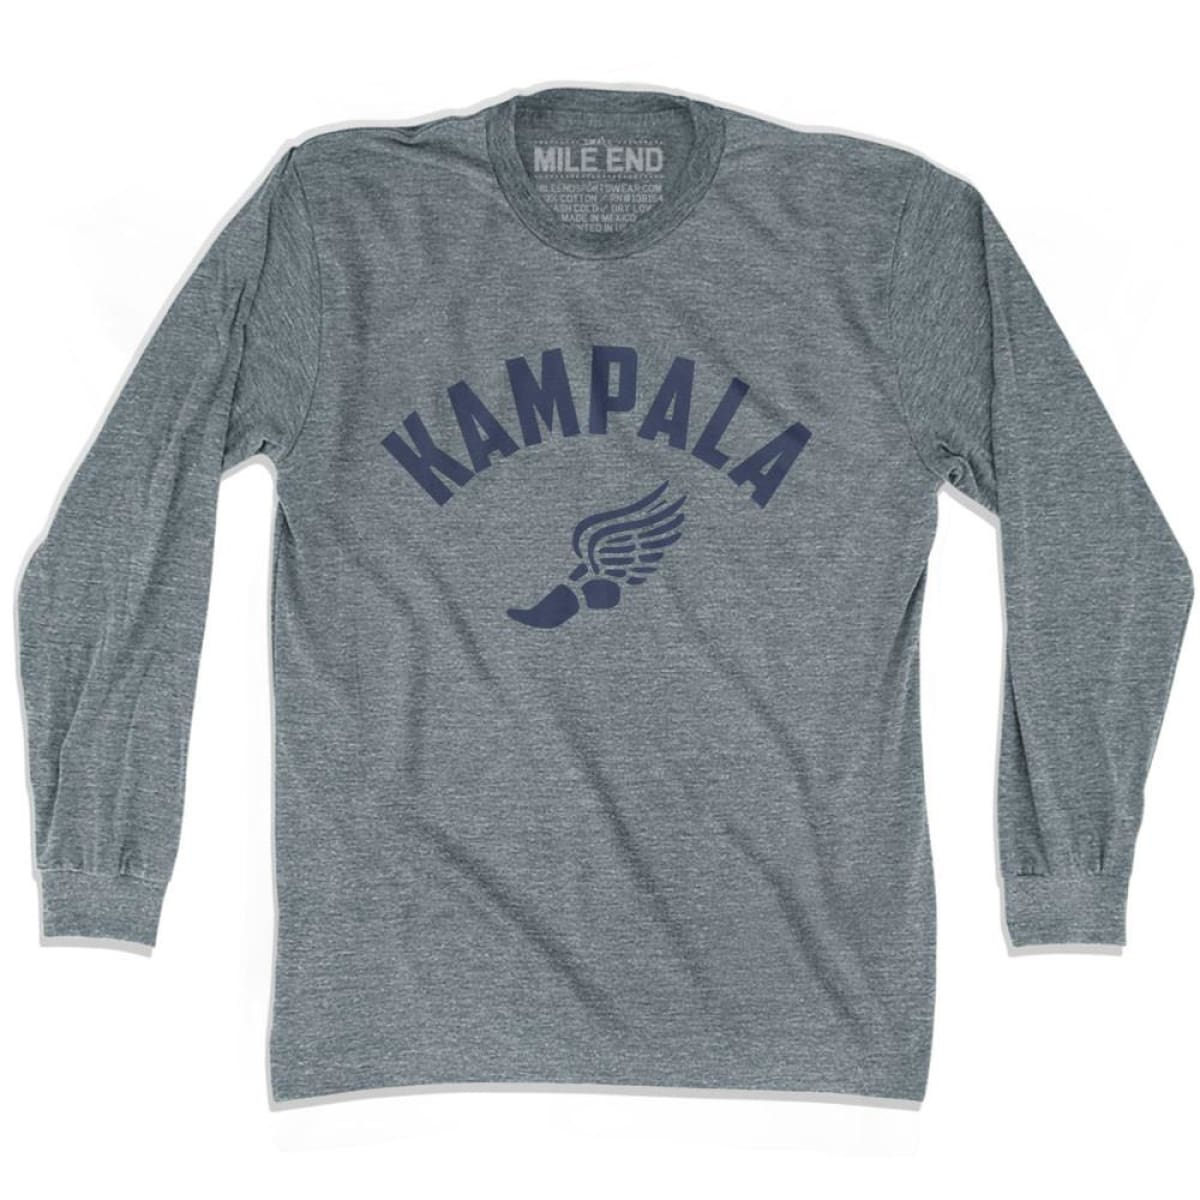 Kampala Track Long Sleeve T-shirt - Athletic Grey / Adult X-Small - Mile End Track